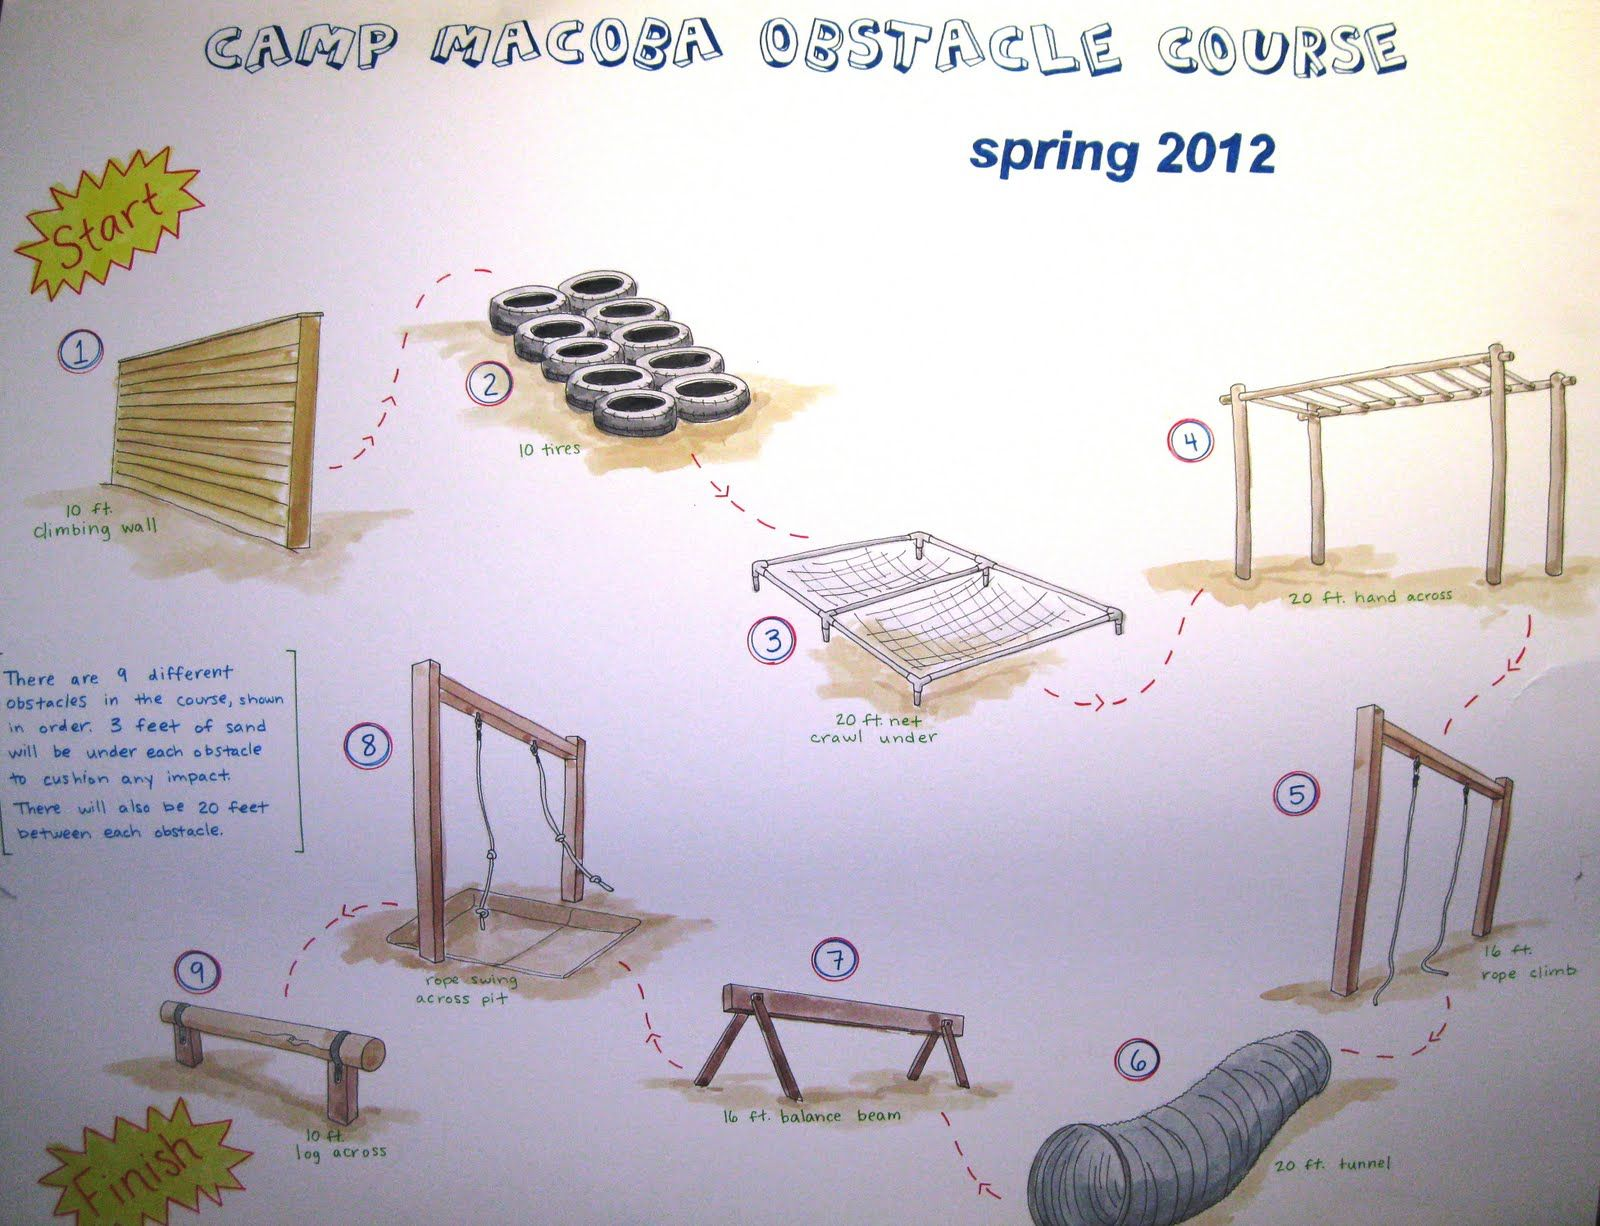 Camp Macoba Improvements And Projects Kids Obstacle Course Backyard Obstacle Course Backyard Gym Backyard diy obstacle course